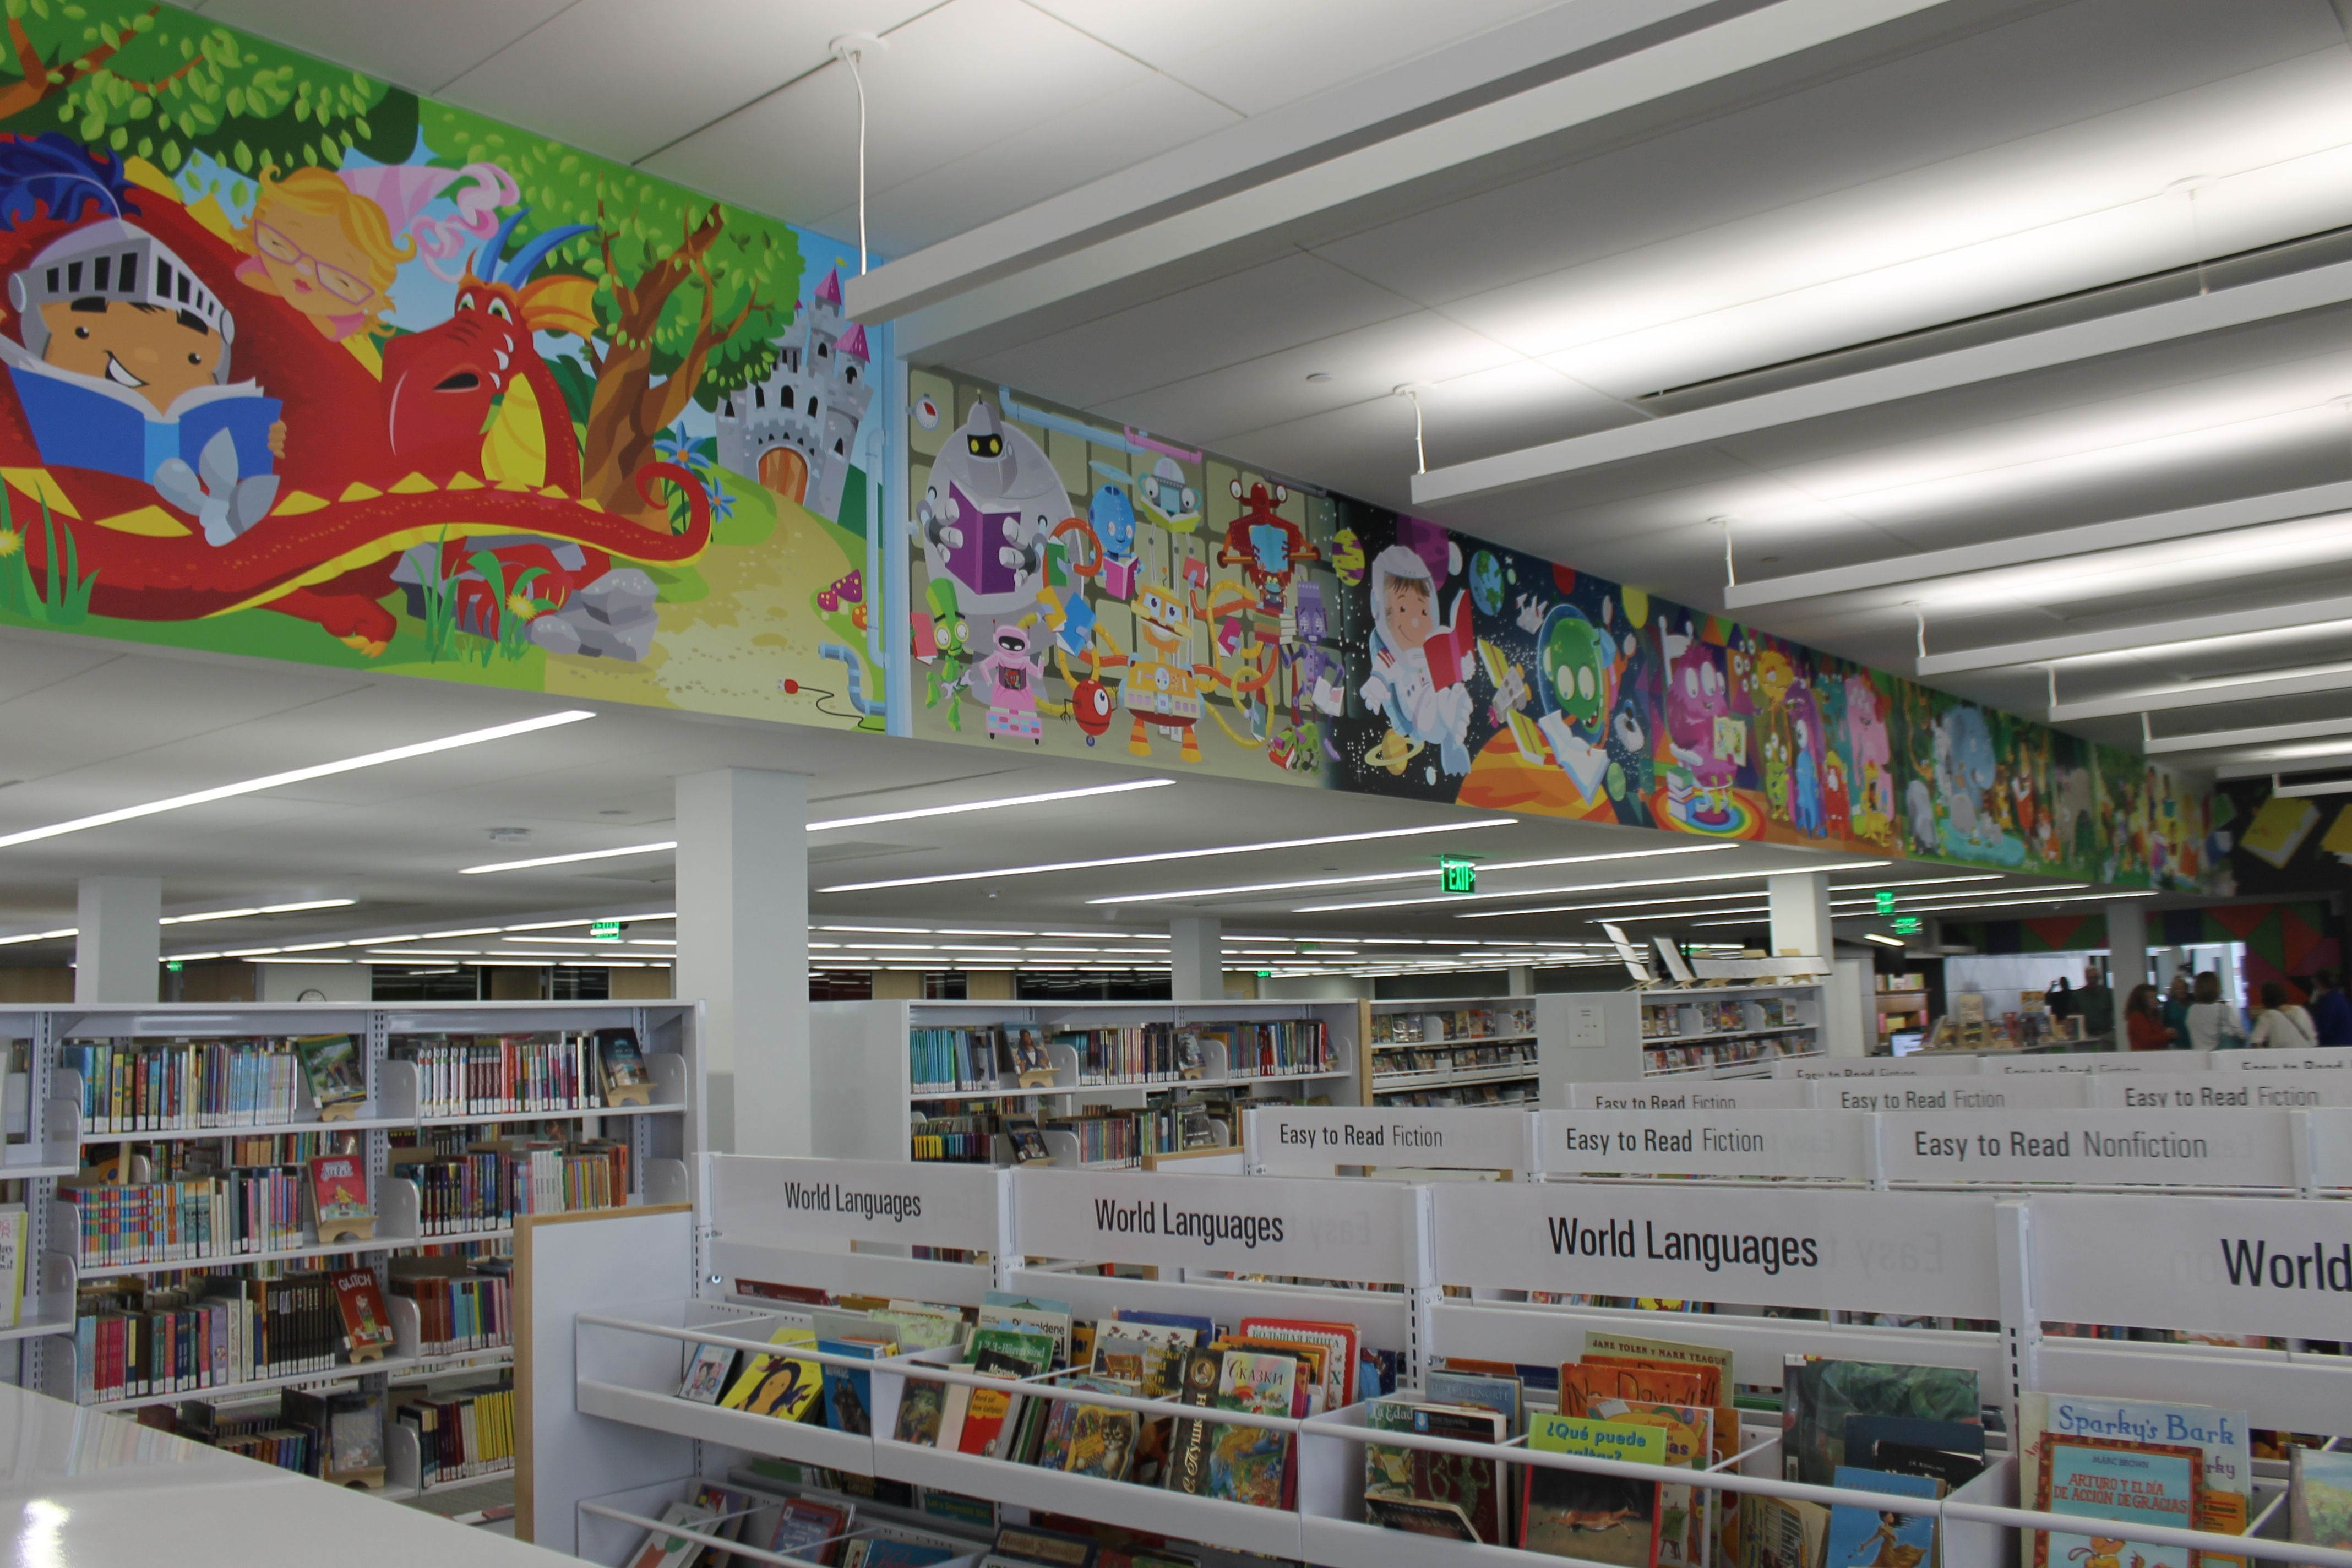 The Newest Addition To Ames Public Library Is A 90 Foot Mural In The Children S Section That Includes Scenes Of Monster Local Entertainment Tribune Outer Space